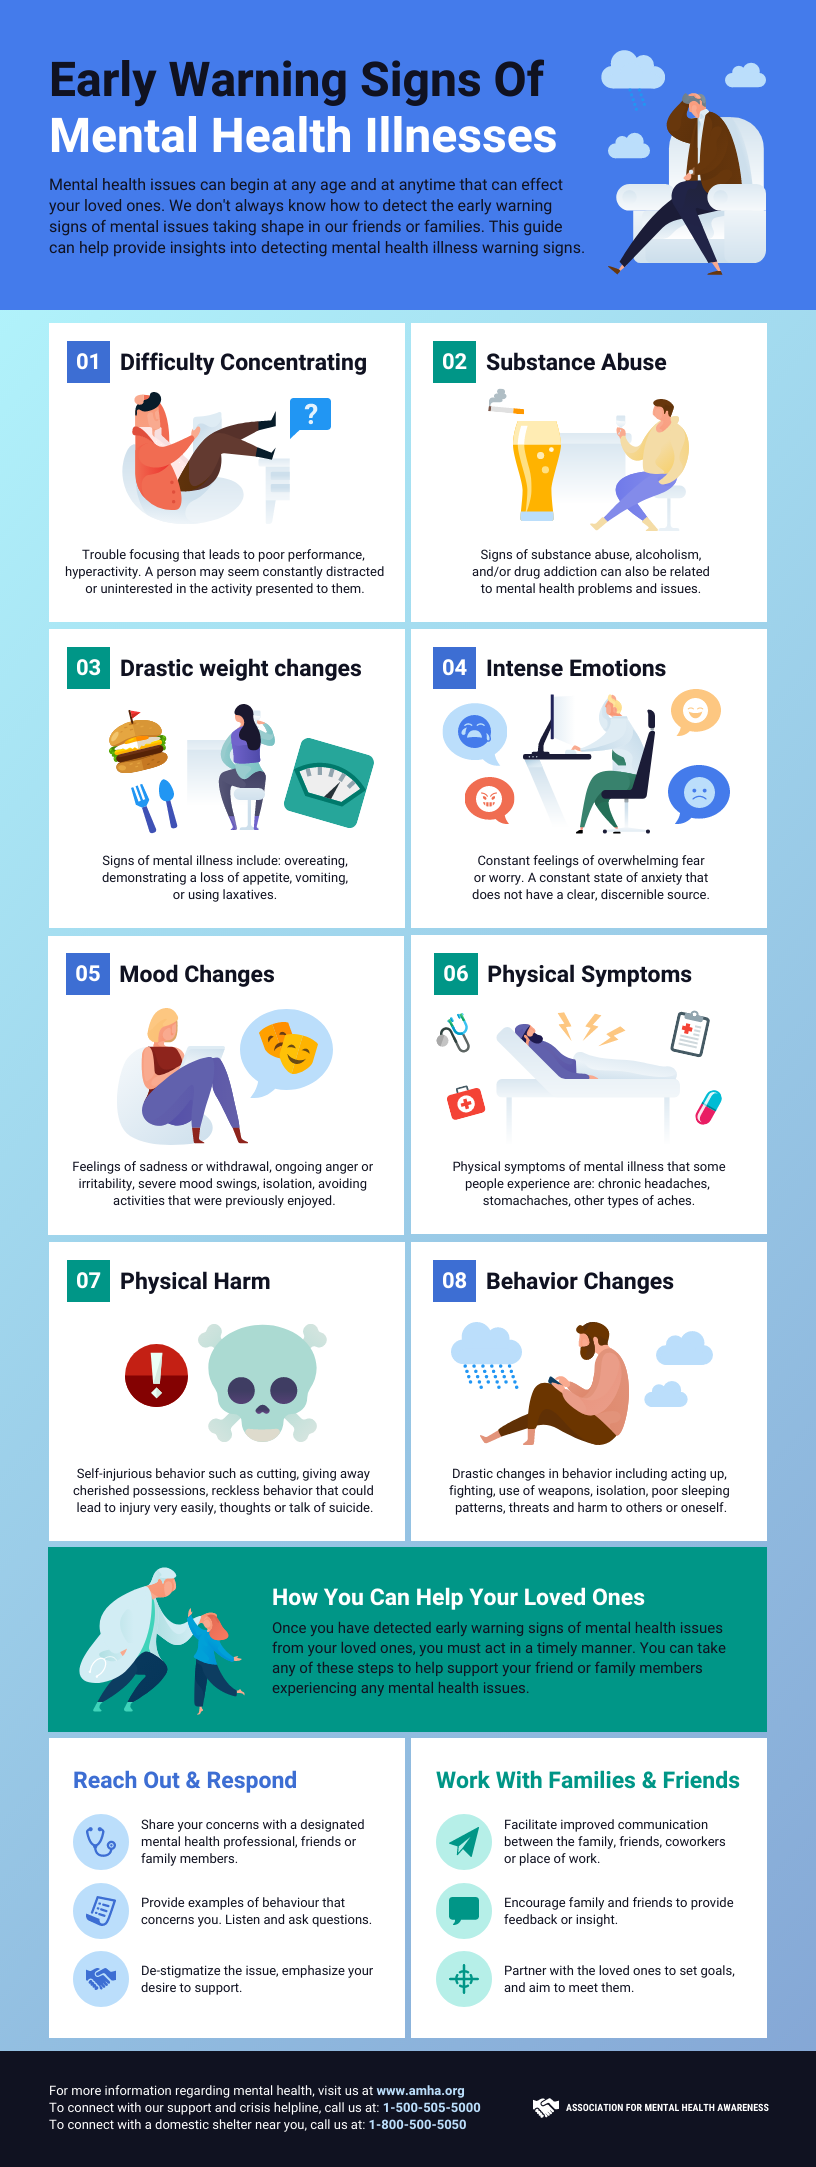 Mental Health Illnesses infographic template